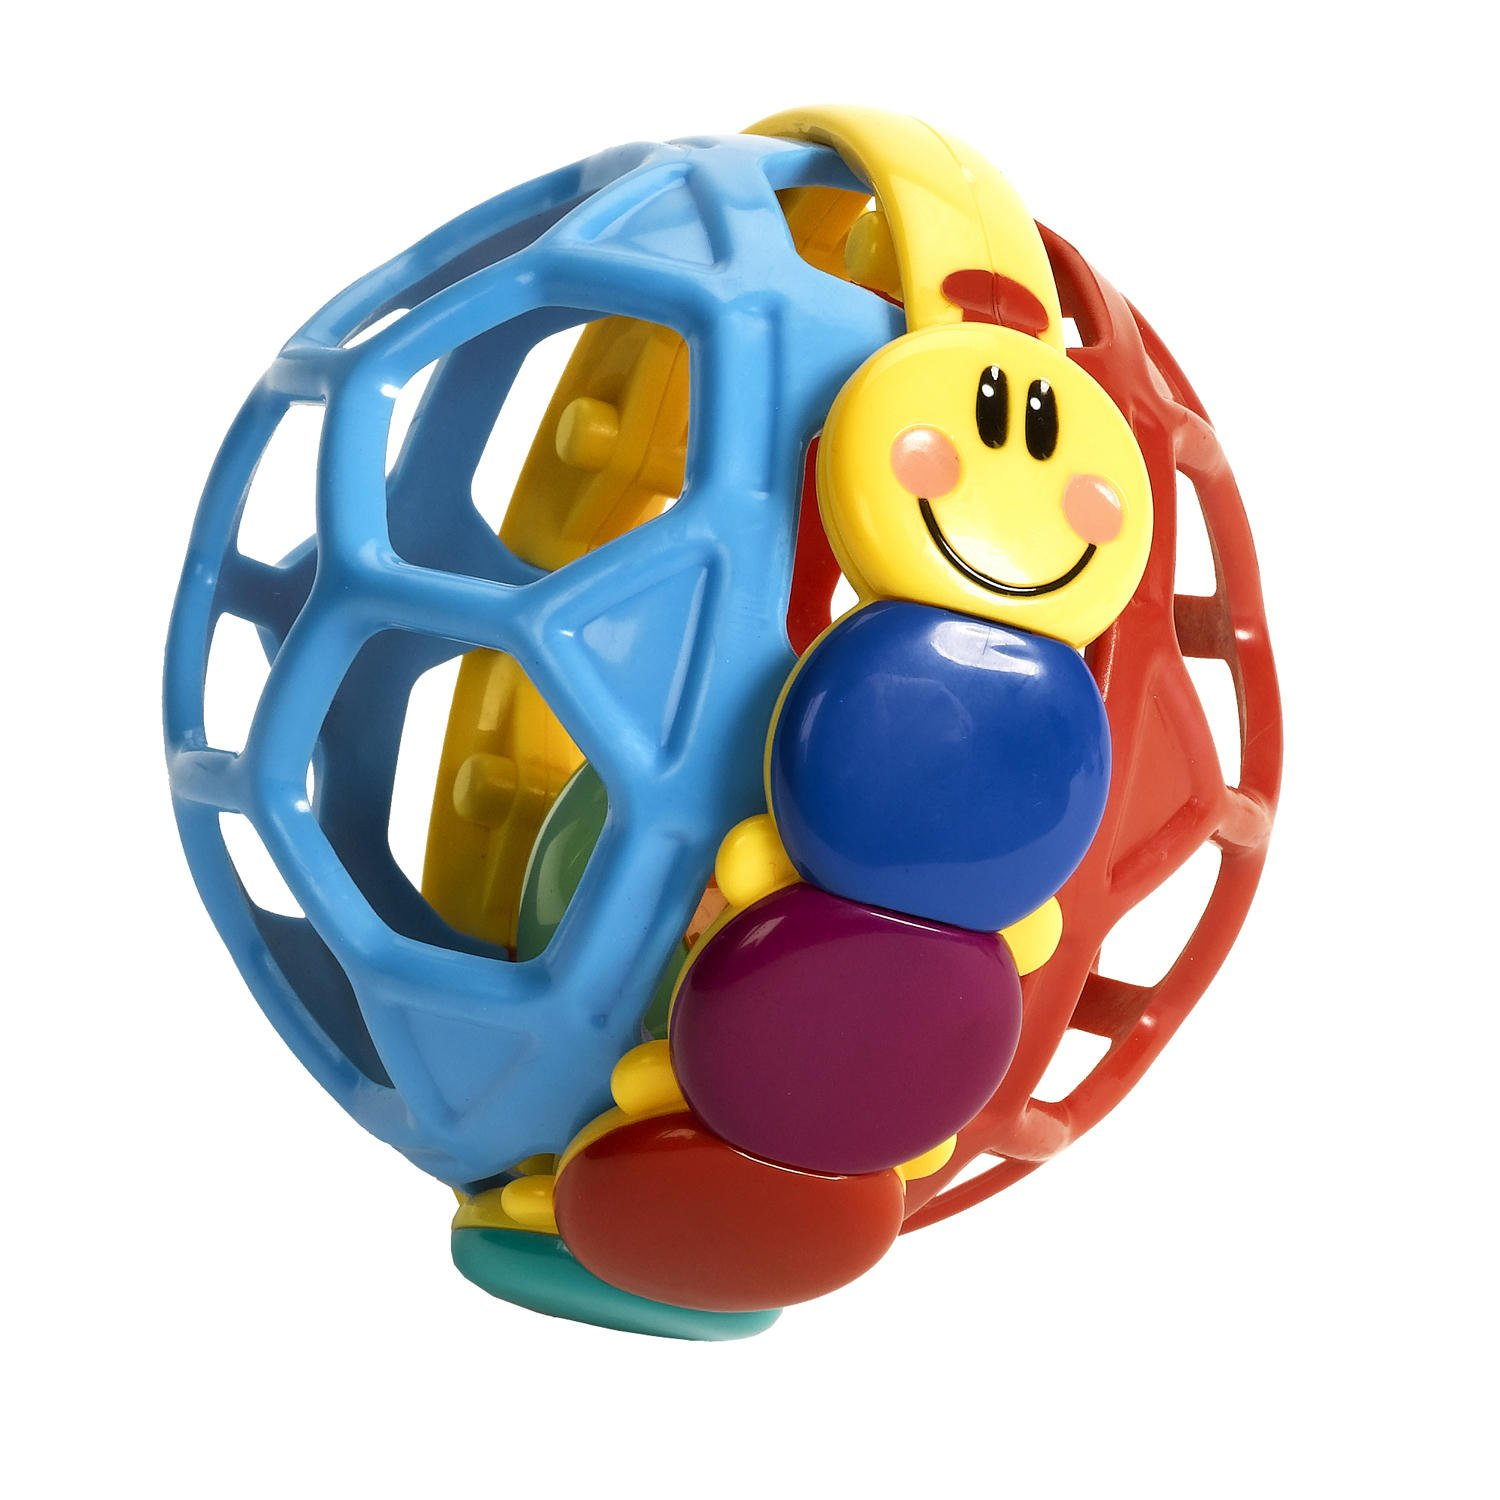 Bendy Ball Rattle Toy Kids II 30974